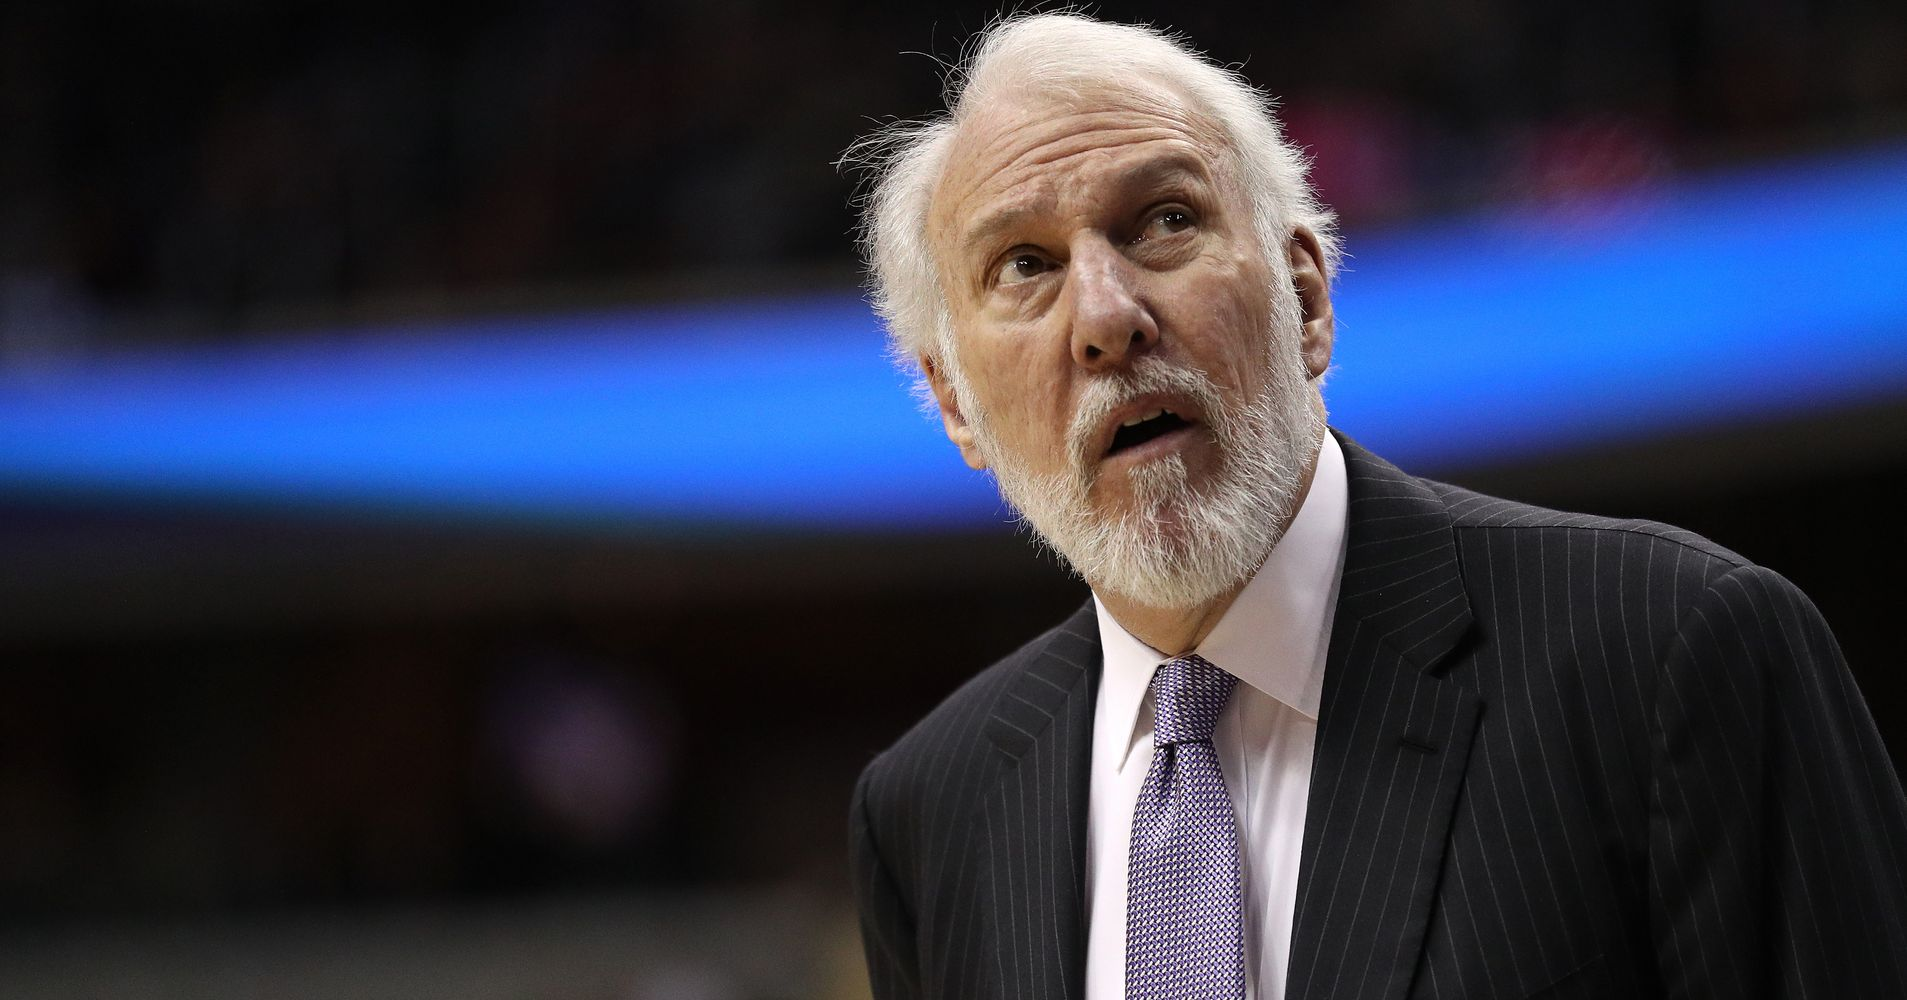 ff894b3fc1bf The NBA Shows Its Love For Gregg Popovich After Wife s Death